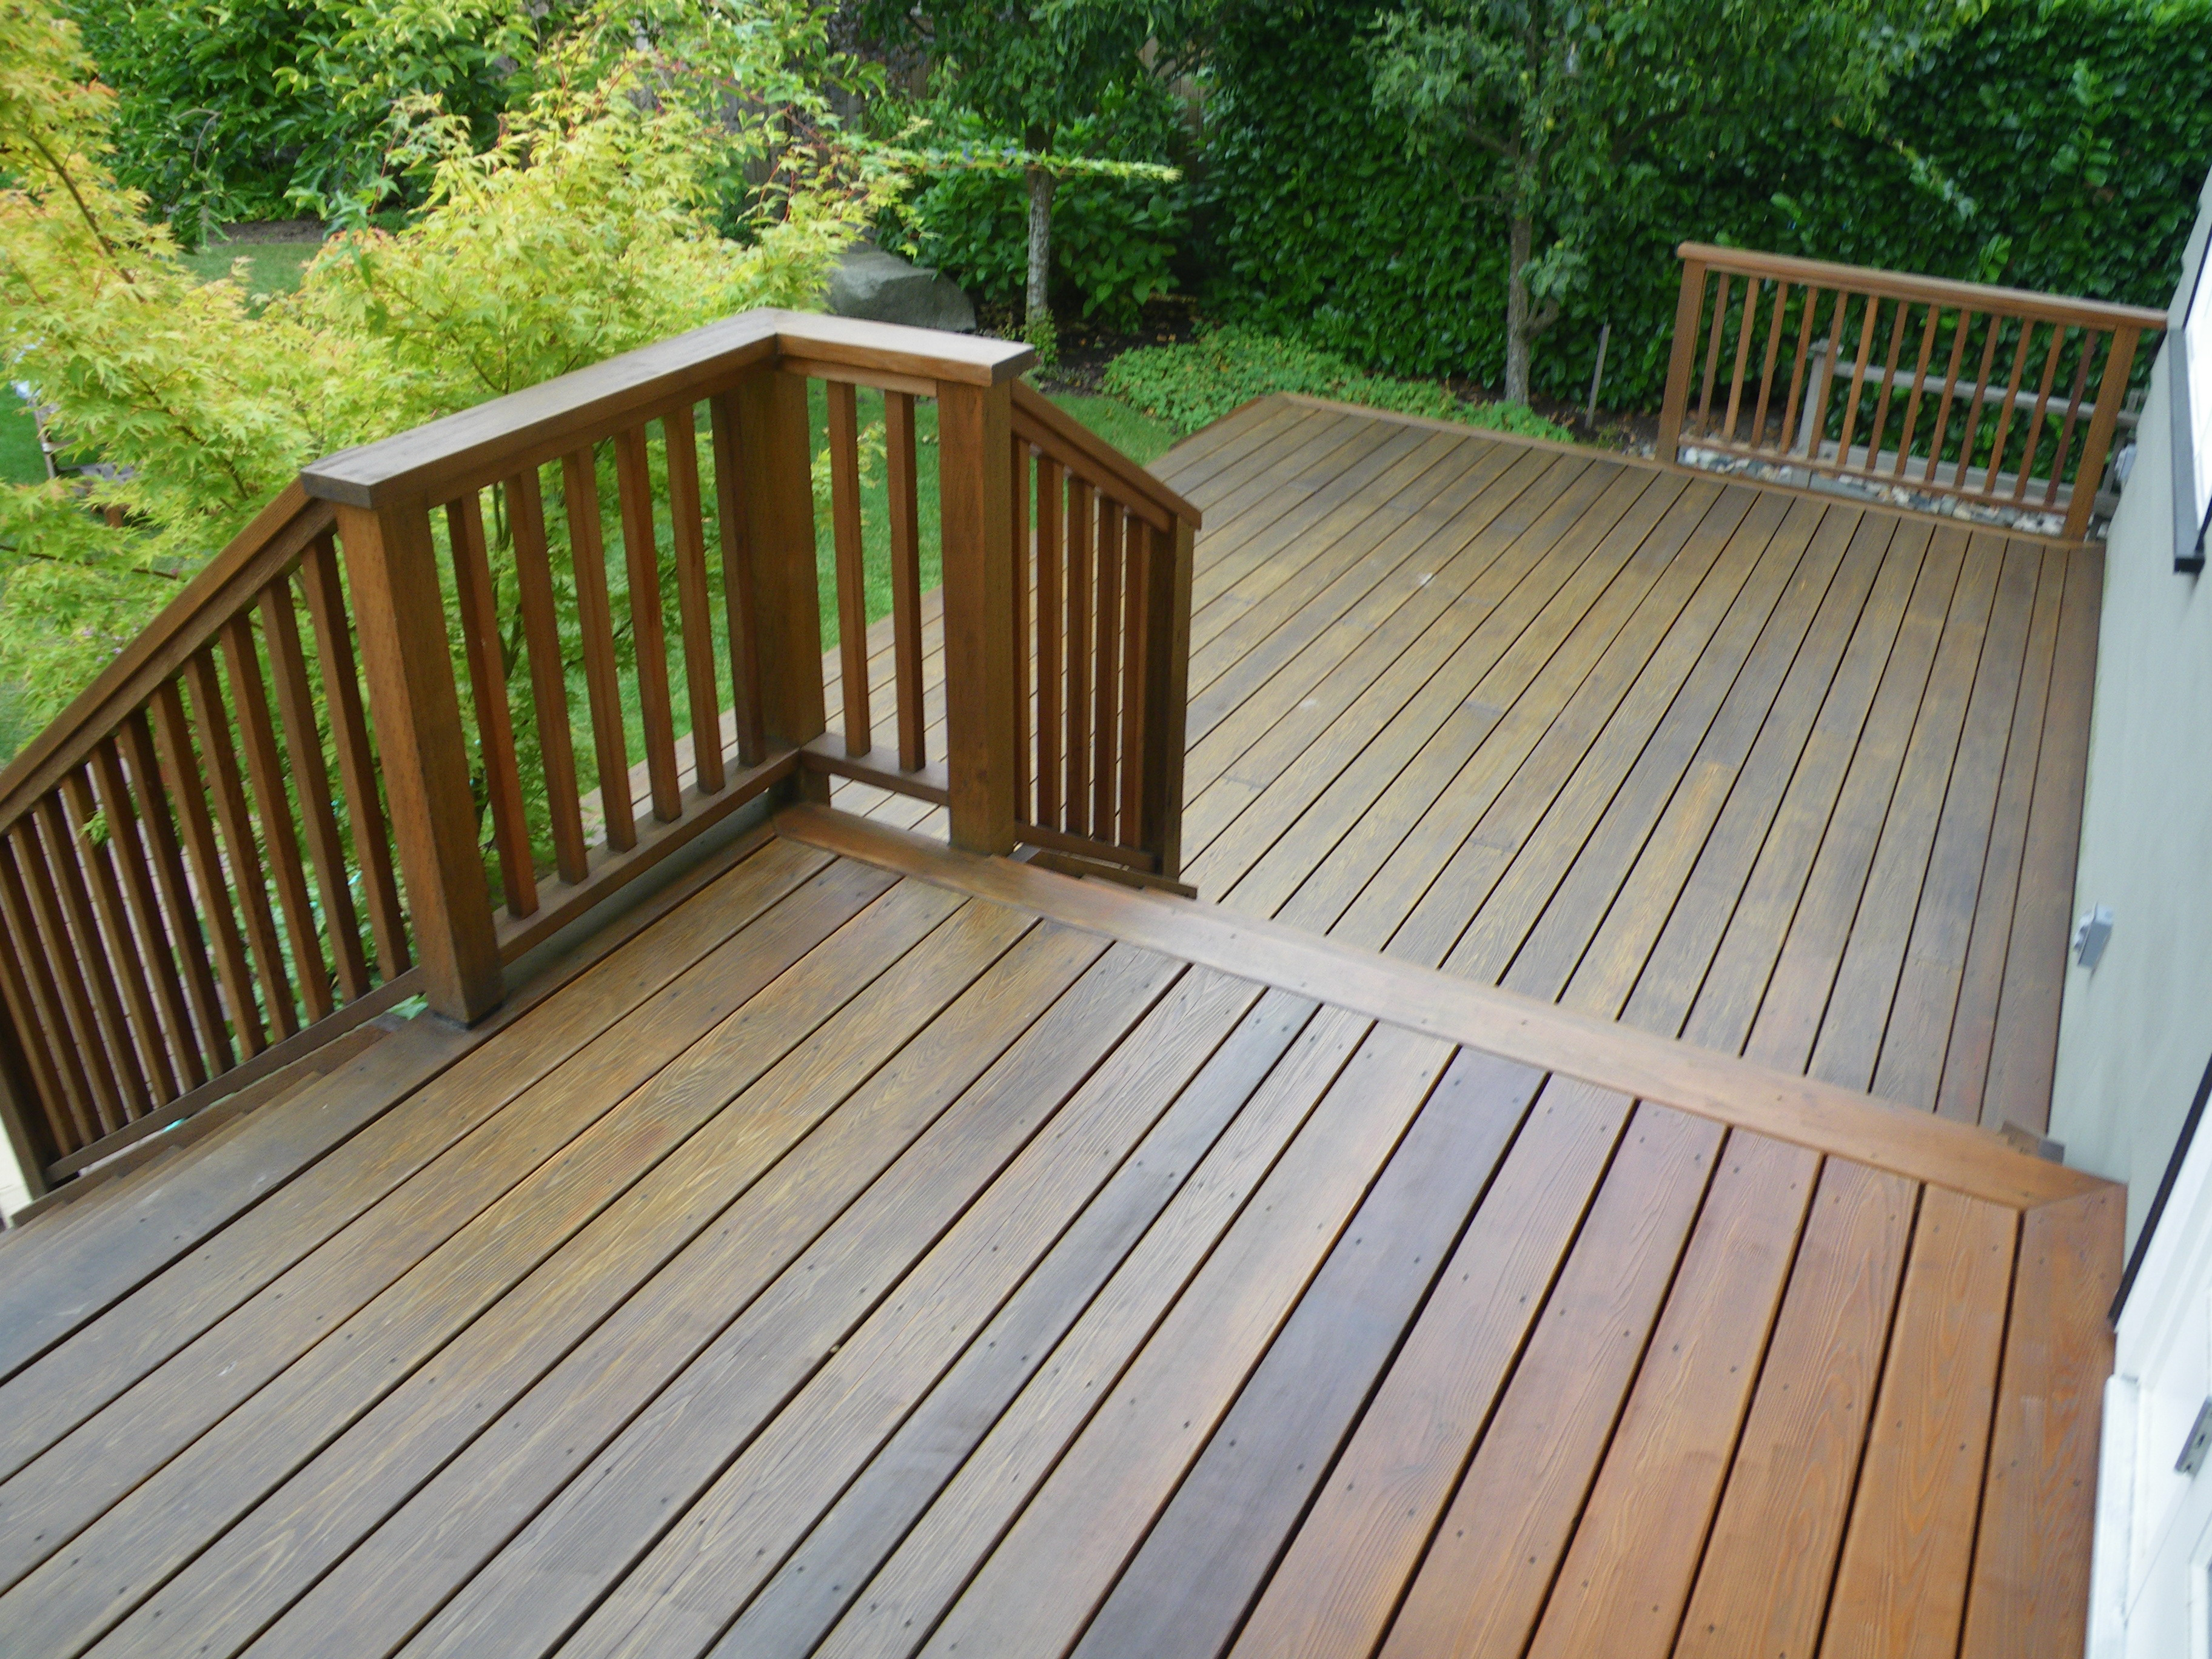 Deck Refinishing Vancouver Deck Staining Deck Painting Careful Painting Vancouver